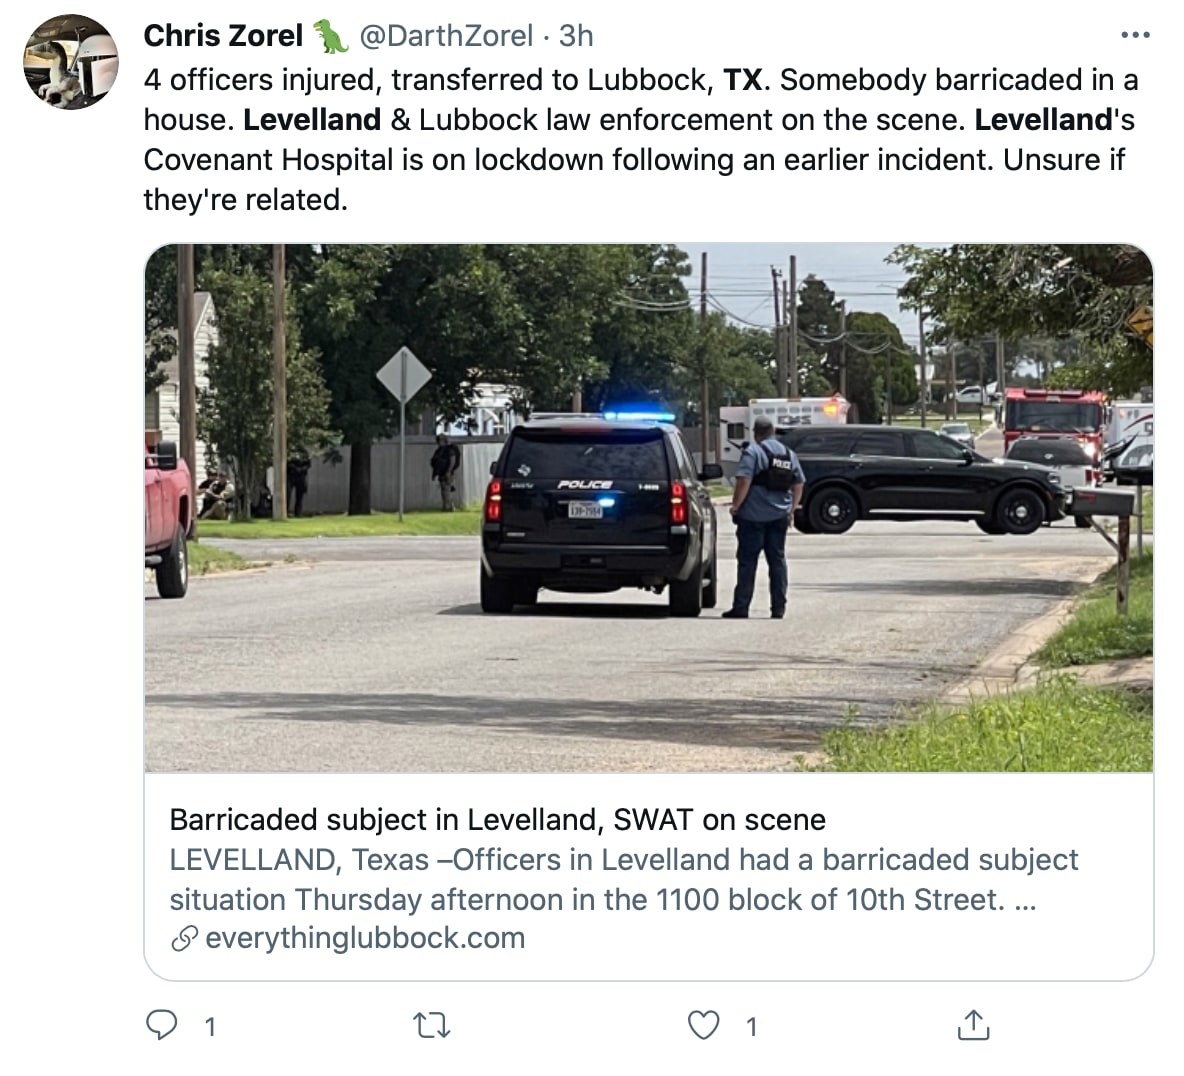 As a precaution, a nearby hospital is closed due to the shooting